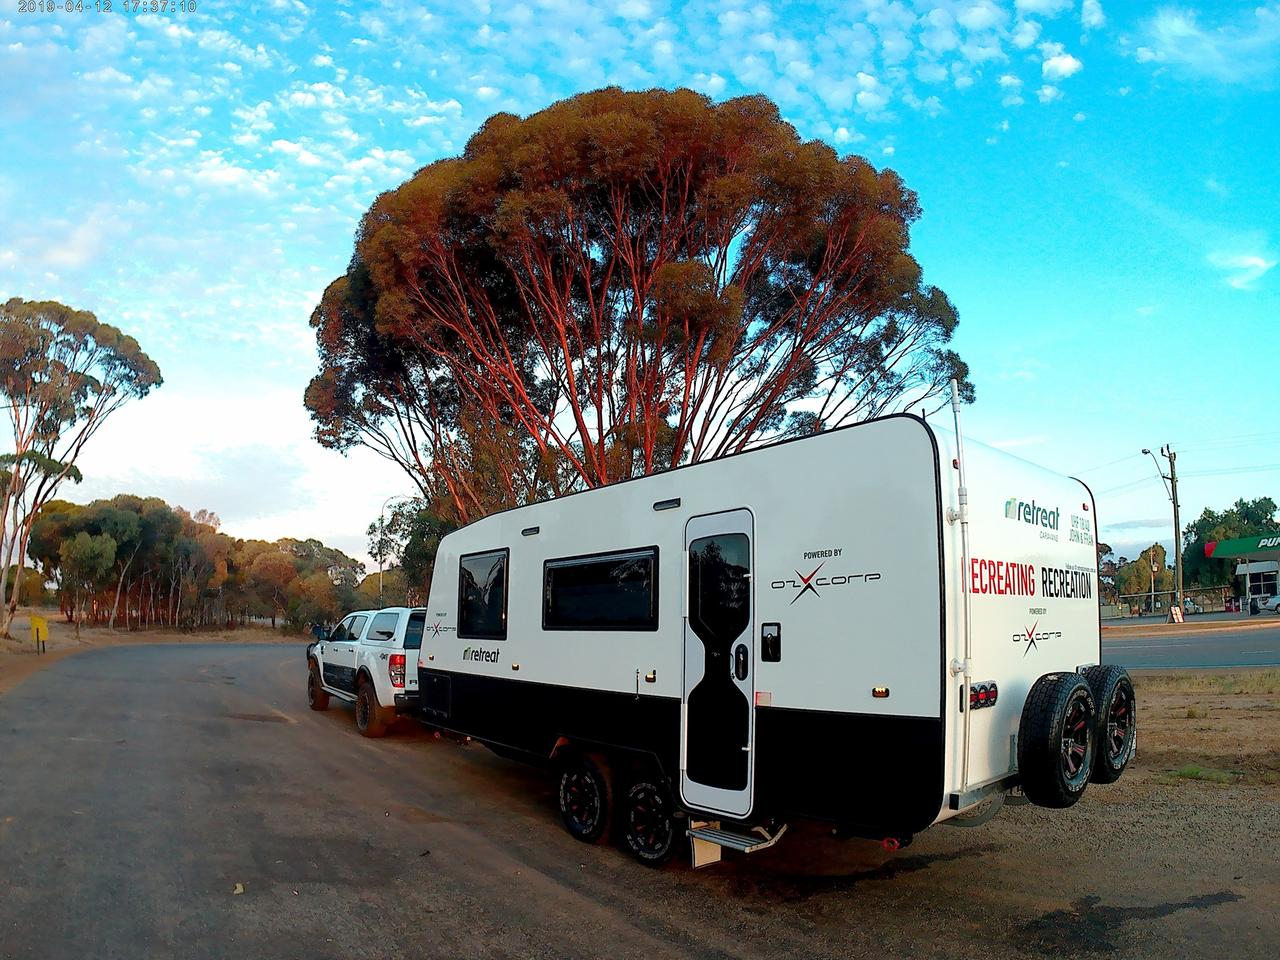 This prototype traveled 12,400 miles around Australia to test out the CEMS electrical system